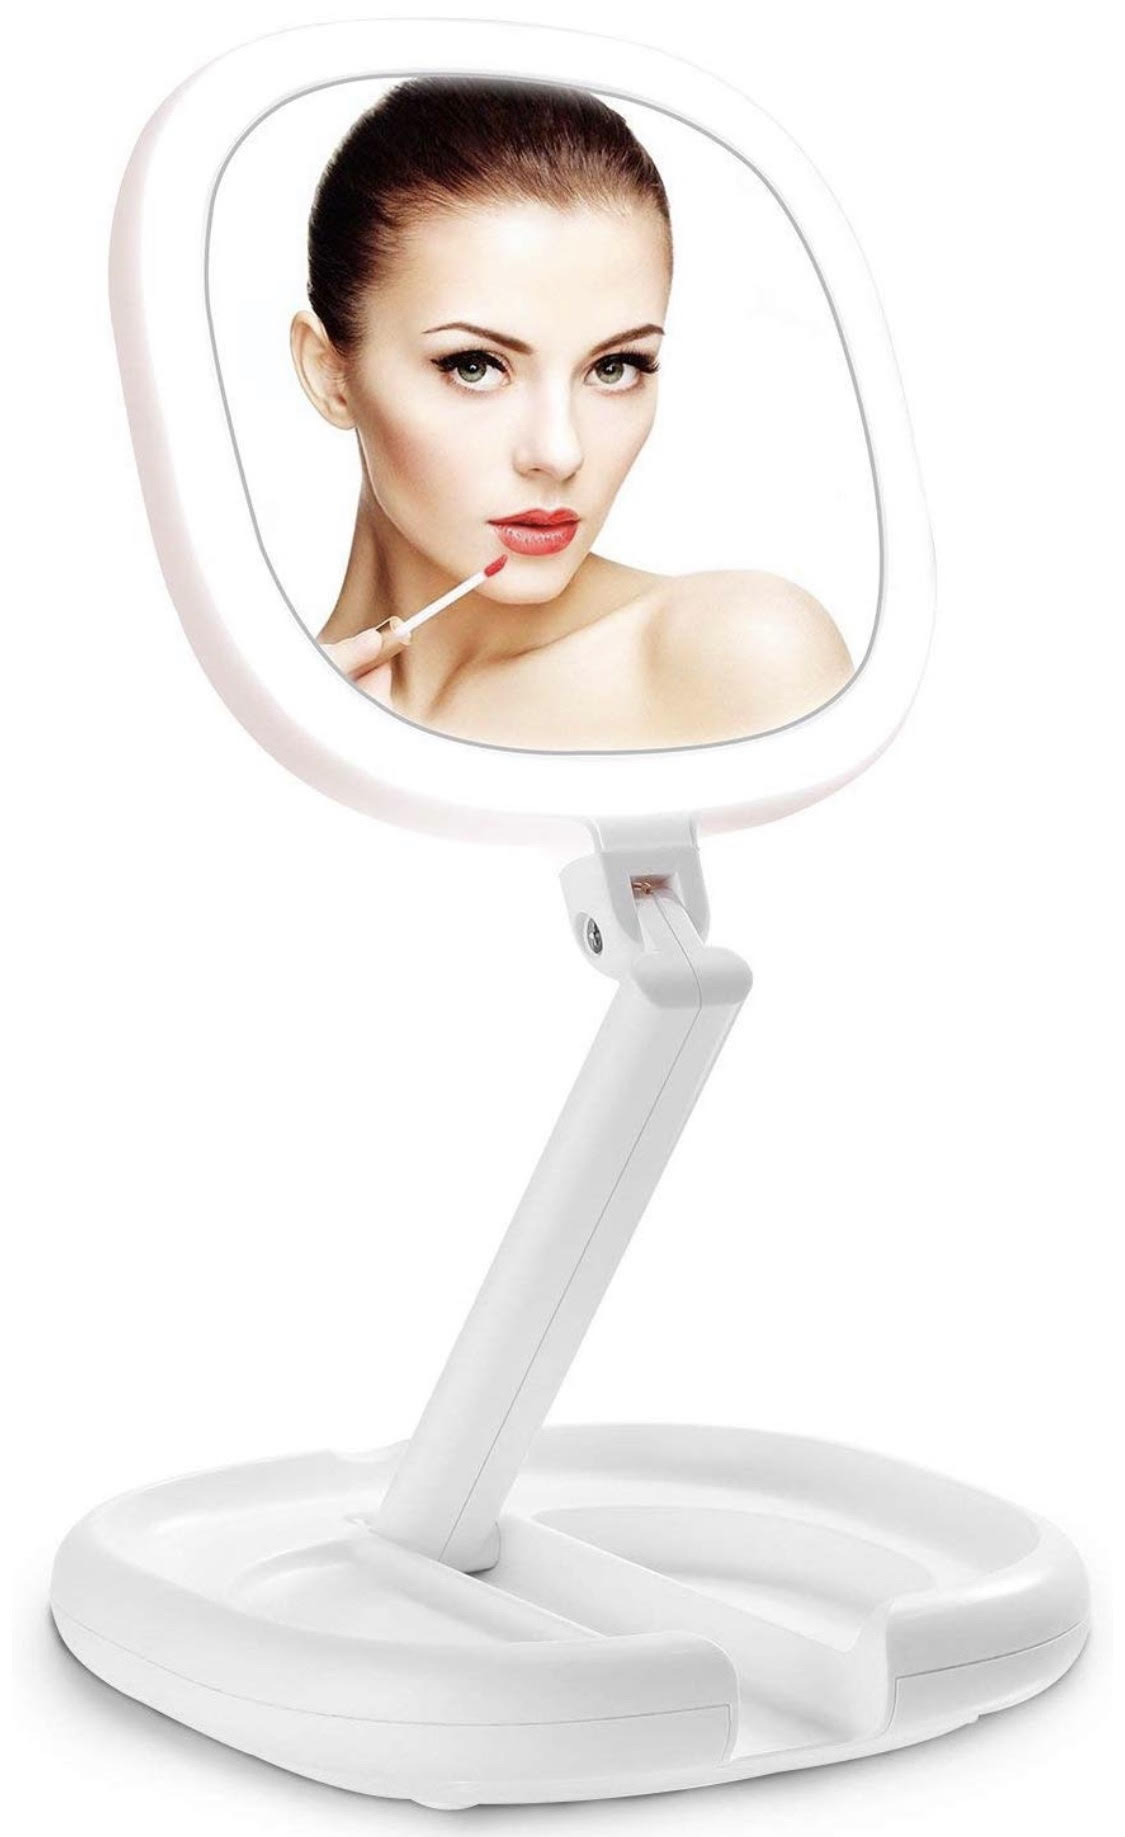 ADD TO FAVORITES Lighted Makeup Mirror, Beautifive Double Sided Magnifying Mirror, Vanity Mirror with Lights